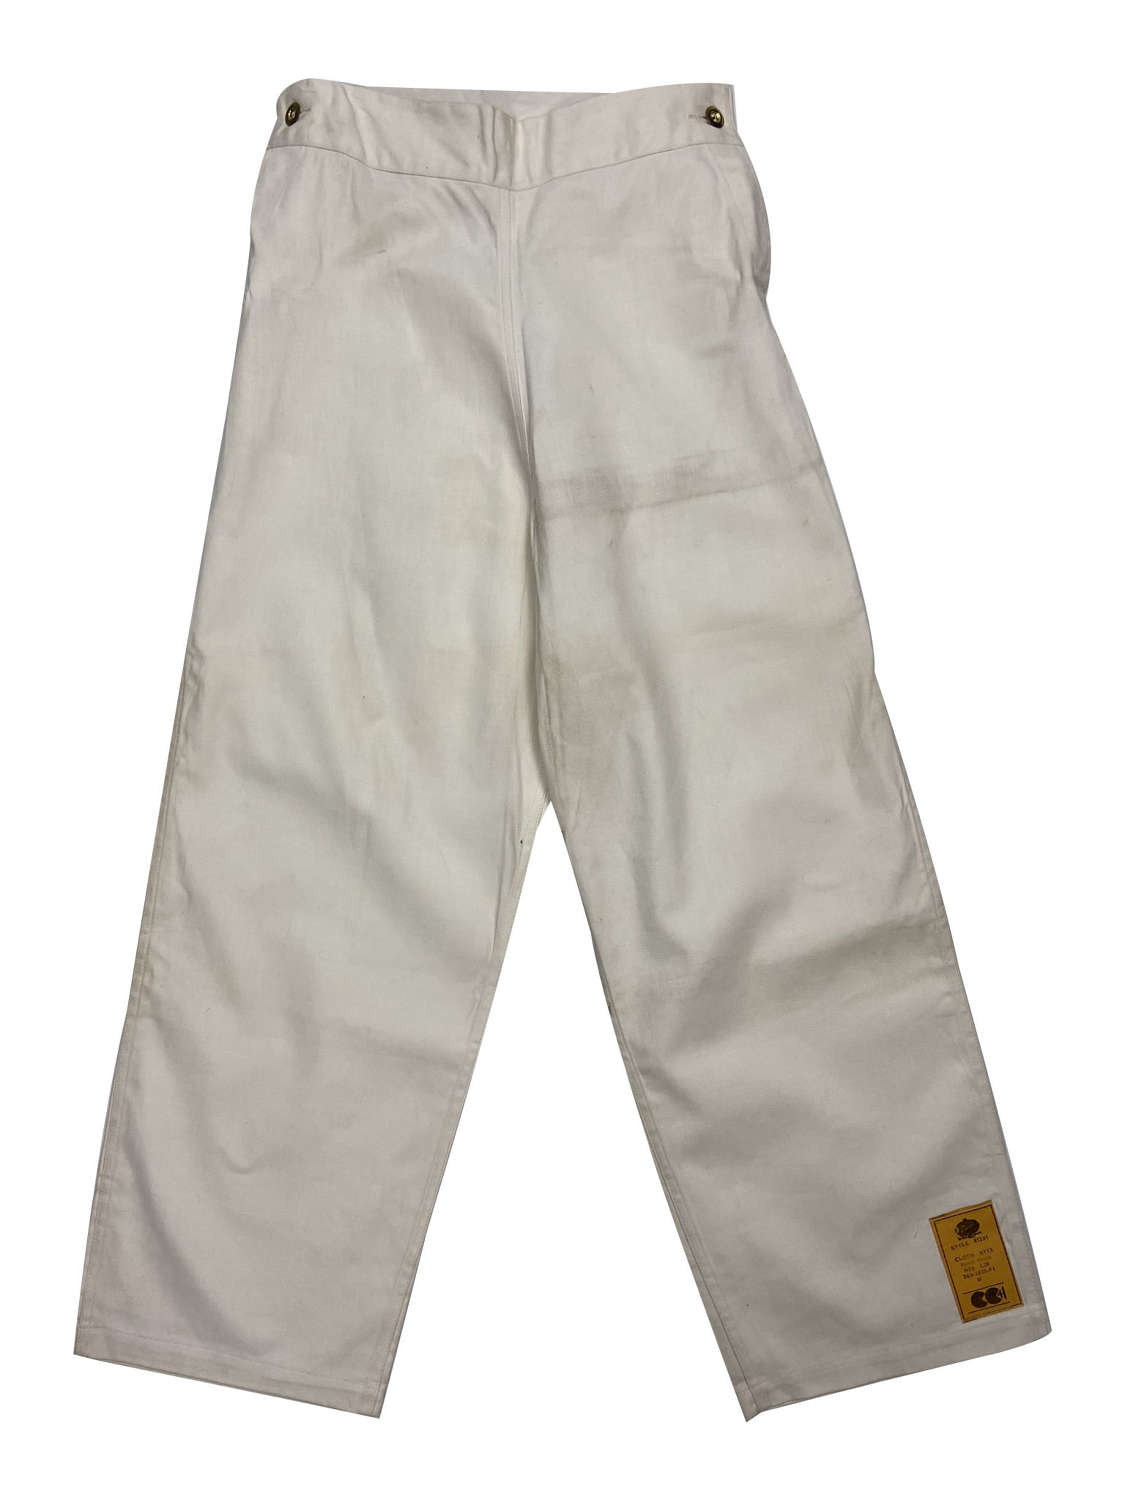 Original CC41 Royal Navy Cotton Drill Work Trousers by 'Digby Morton'